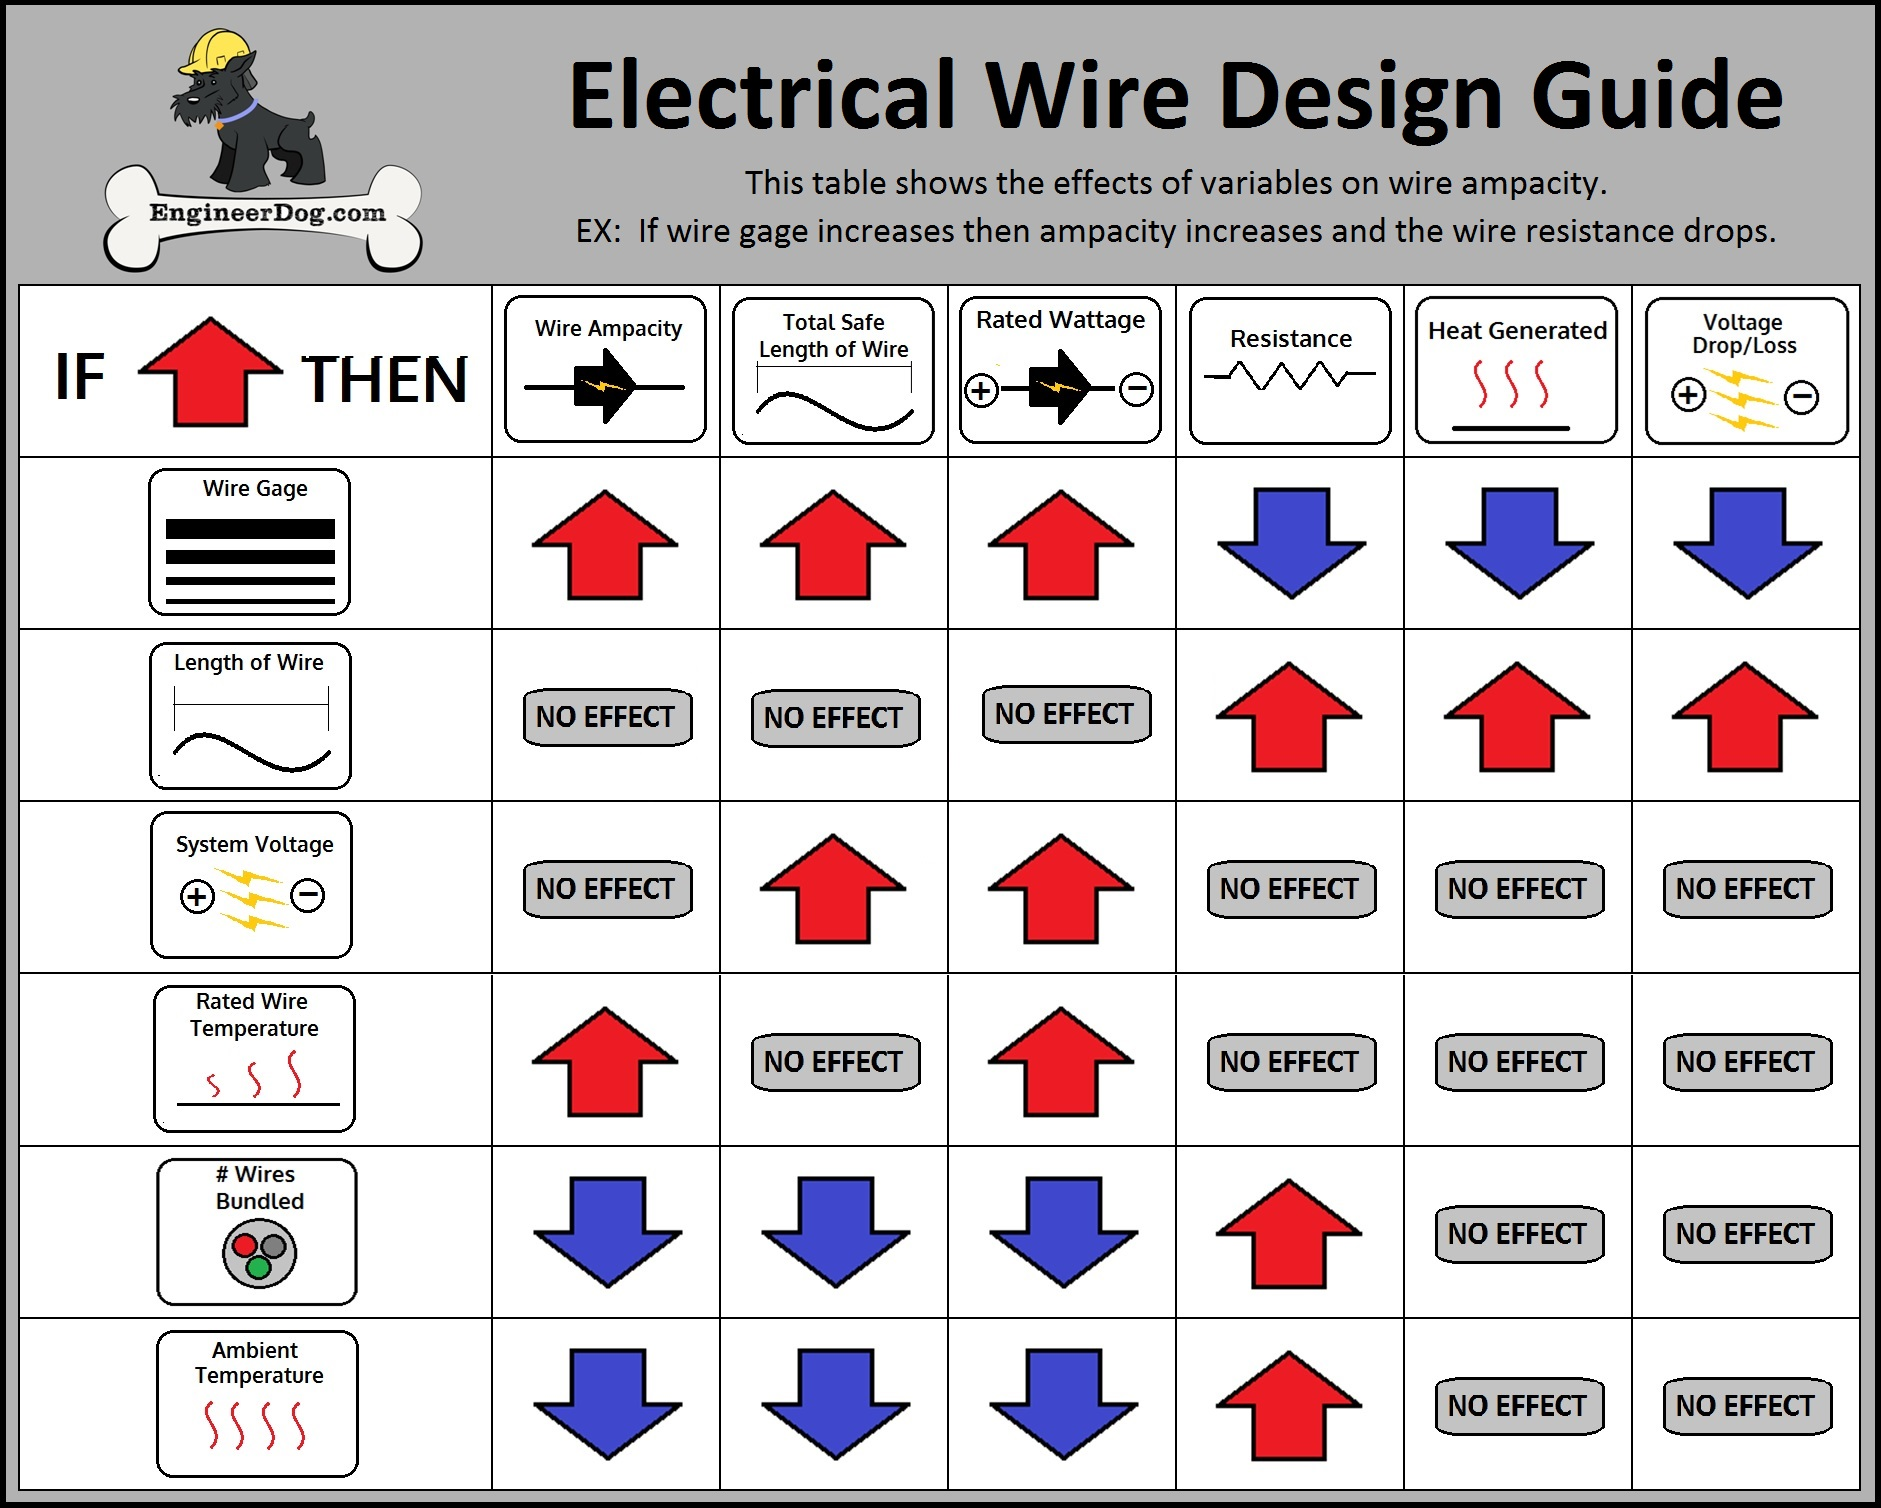 Wire amp guide today manual guide trends sample free electrical wire gauge sizing calculator engineerdog rh engineerdog com 100 amp wire size chart wire gauge amp chart greentooth